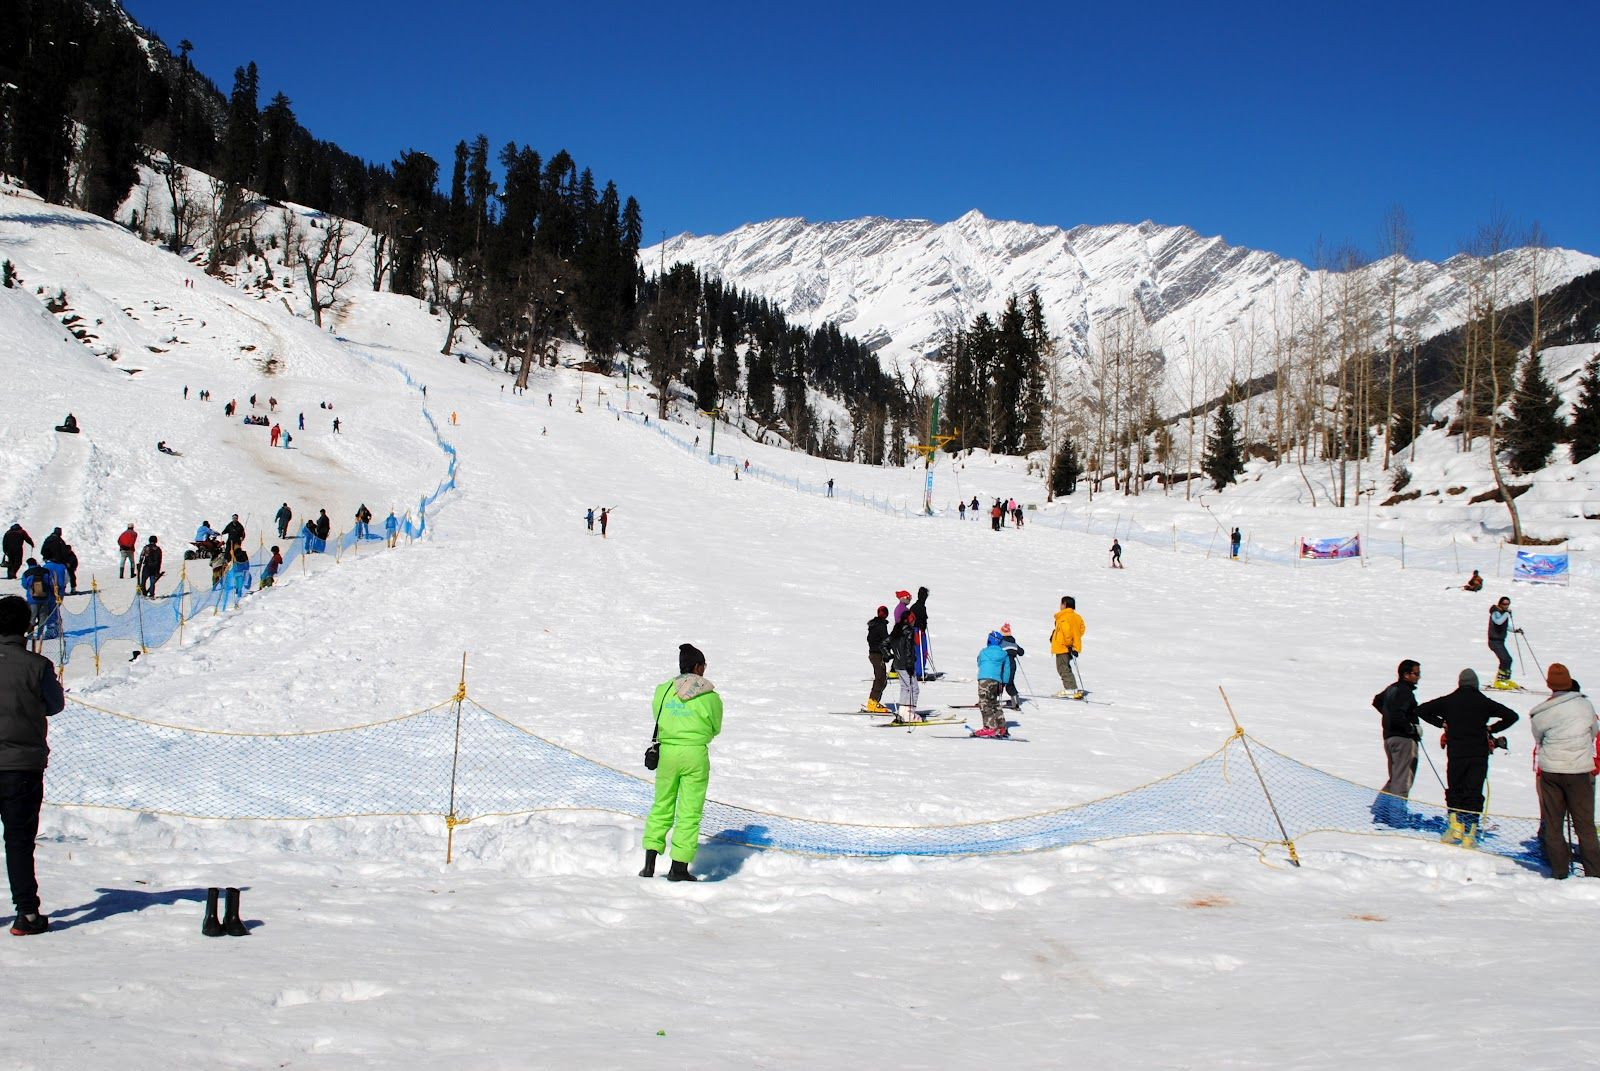 Manali in Himachal Pradesh - one you must certainly visit